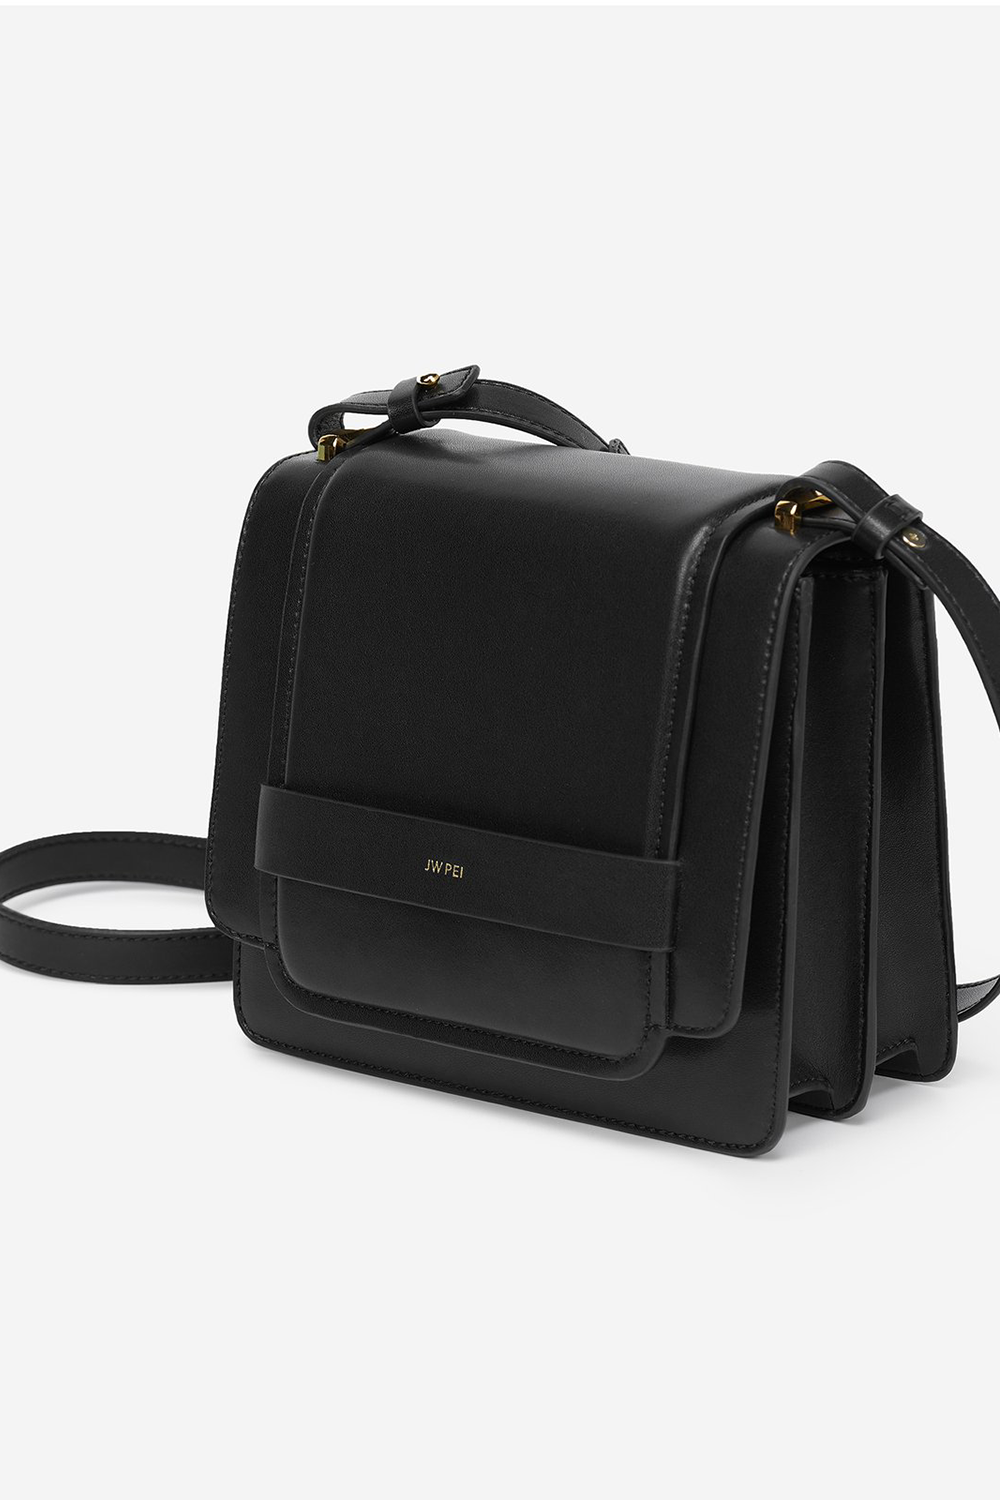 Fiona Bag in Black